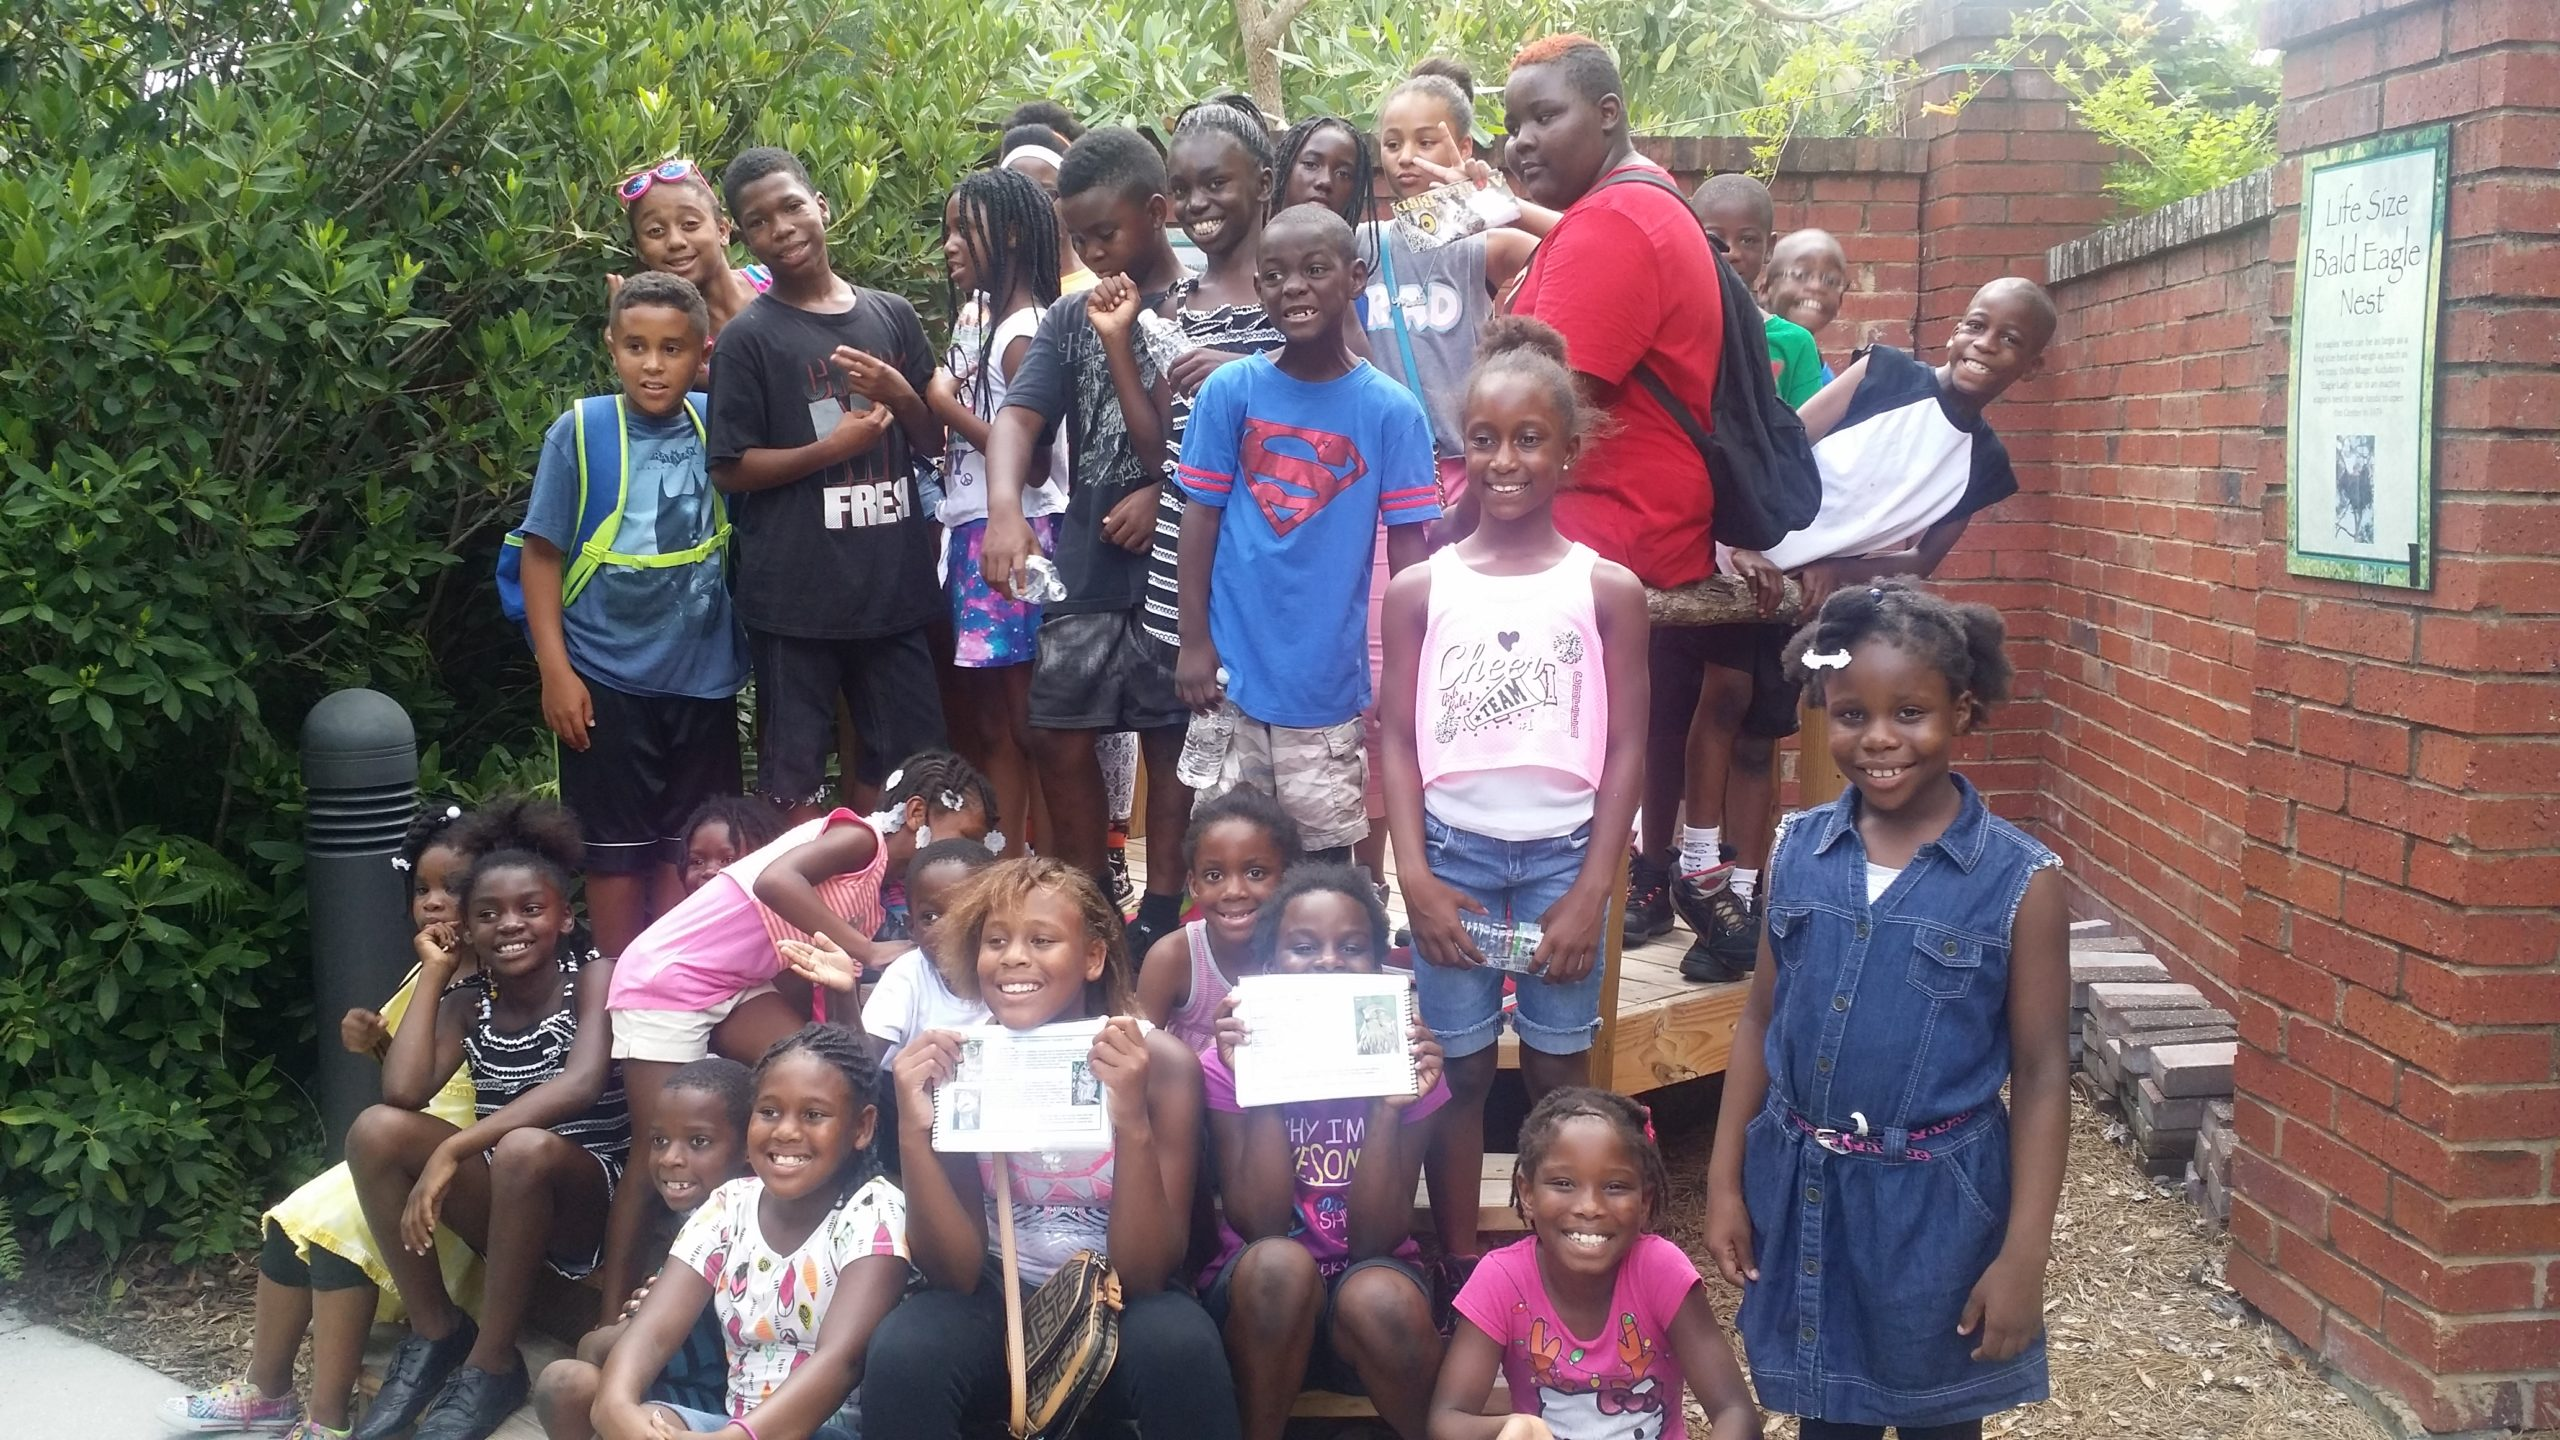 P.E.C. Summer STEM Camp. Students at the Audubon Center for Birds of Prey.